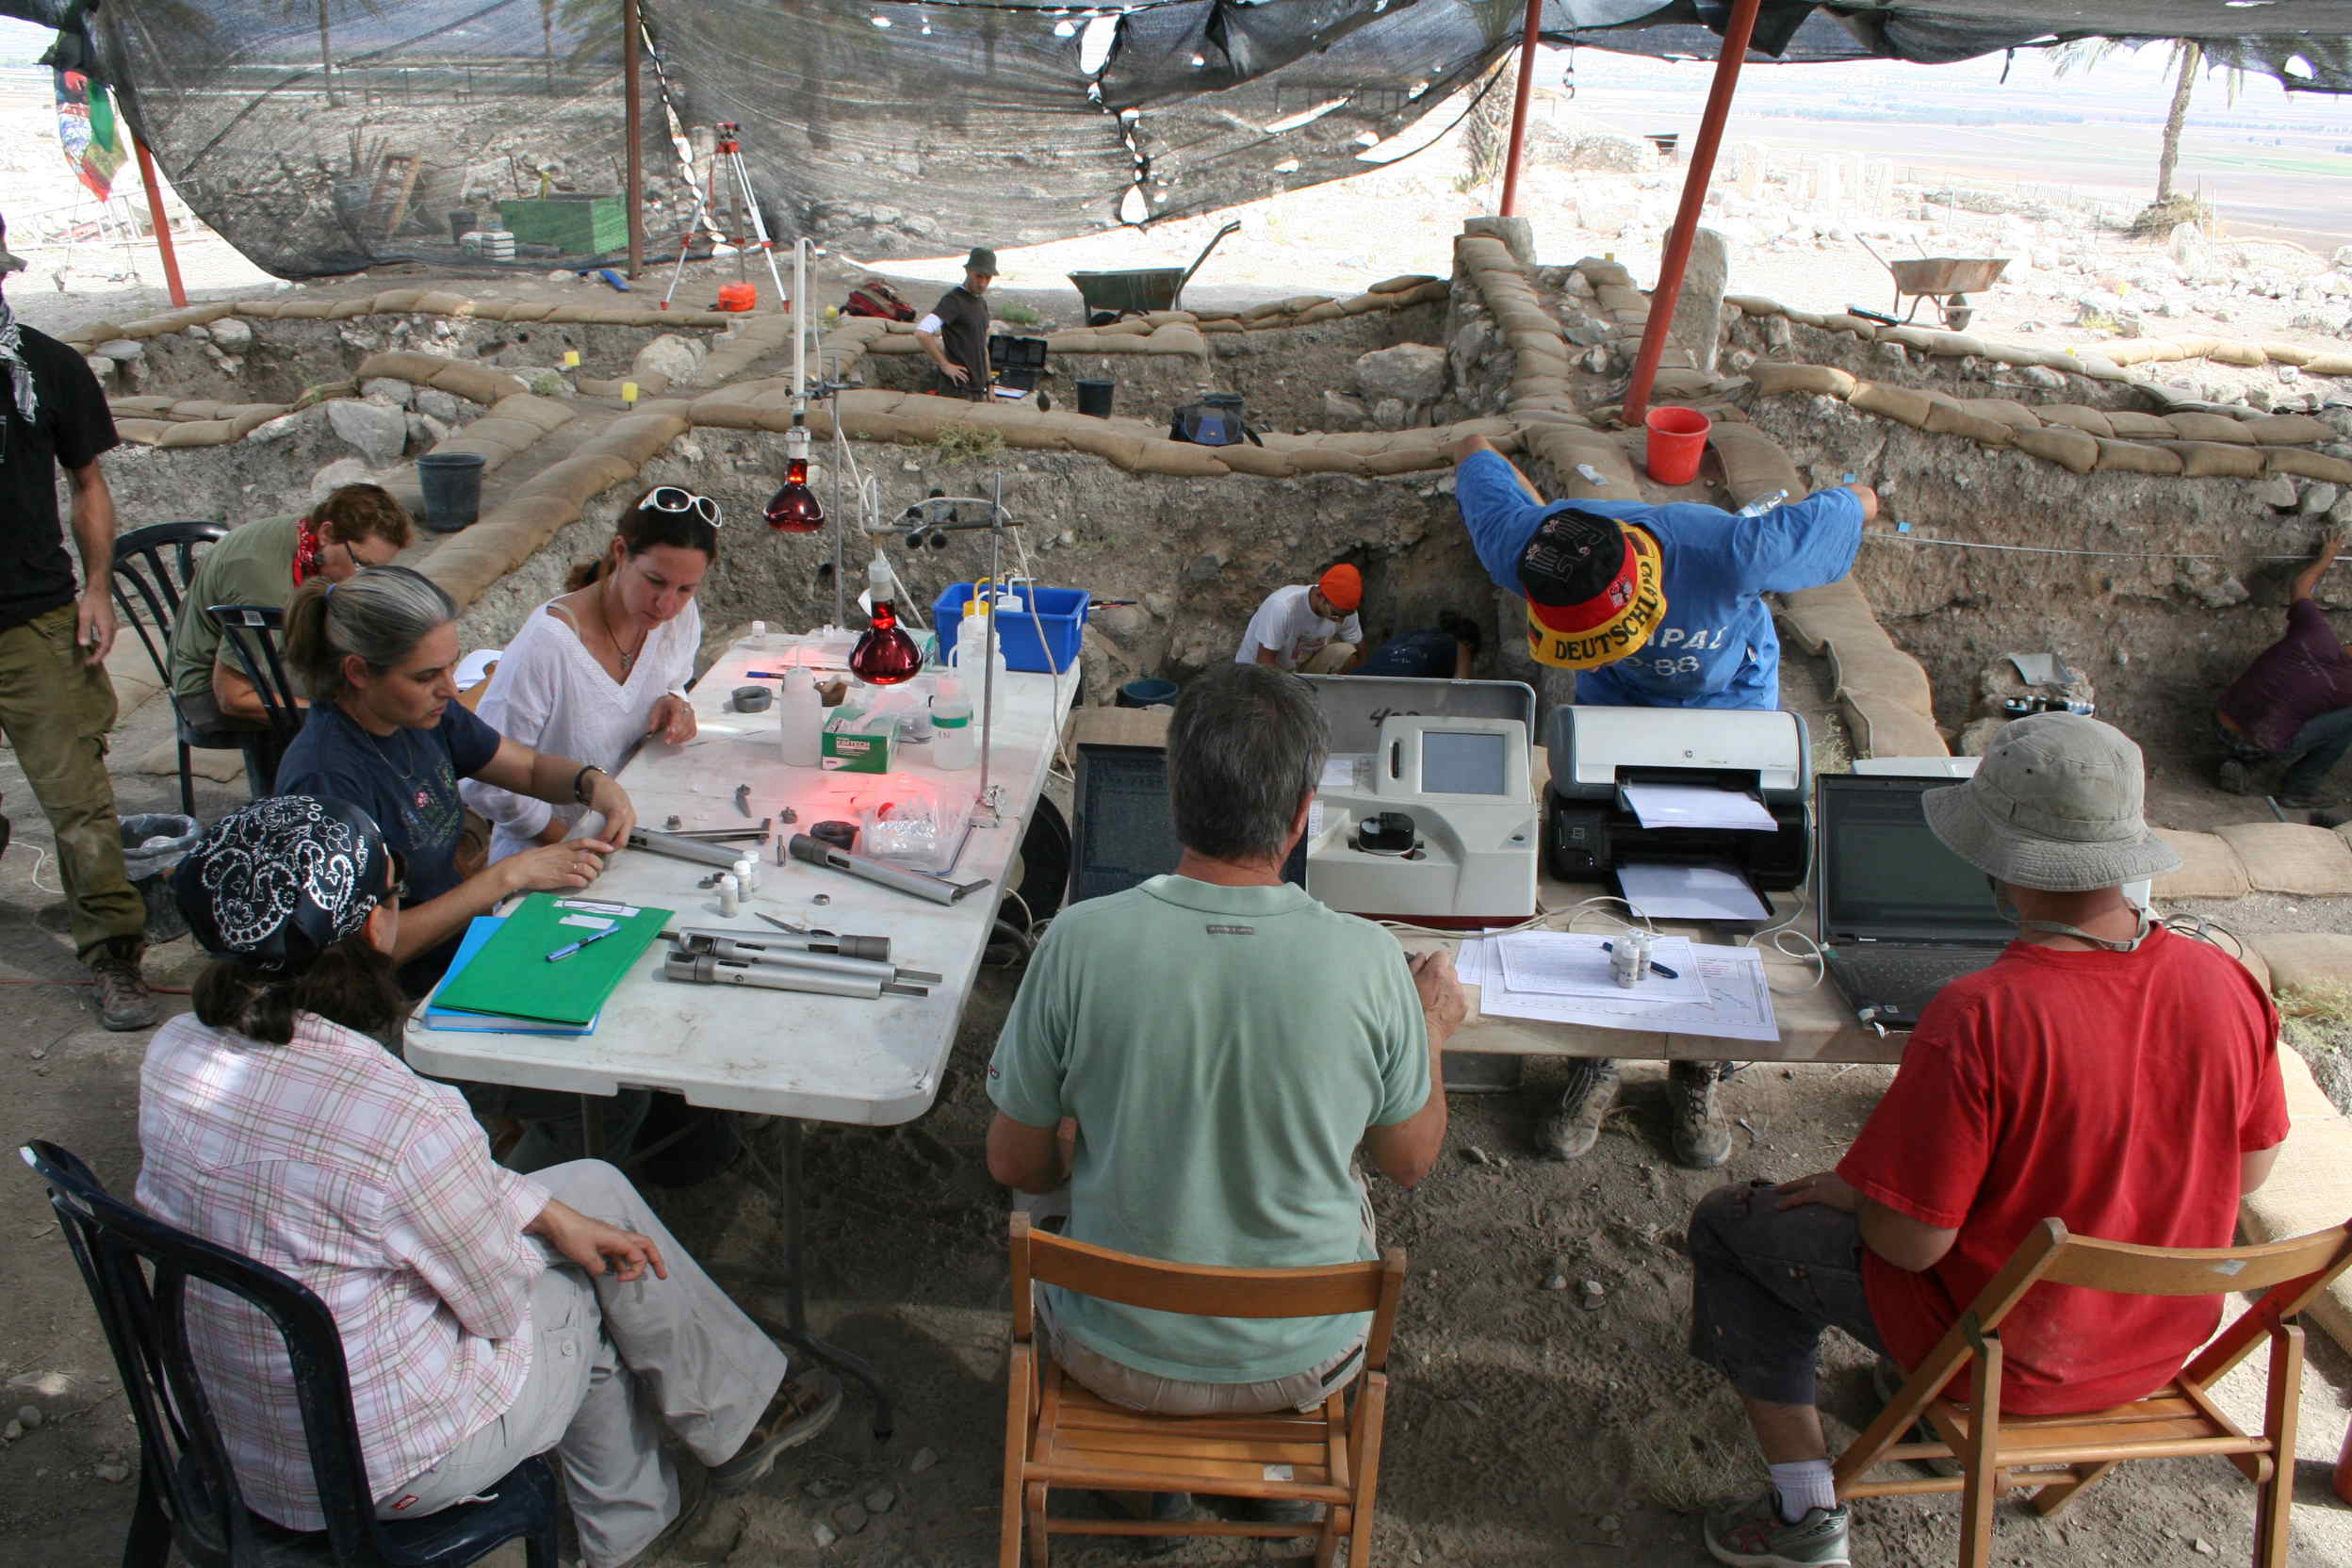 Figure 9: The Kimmel Center team at work in Megiddo, Israel. Photo credit: Israel Finkelstein.